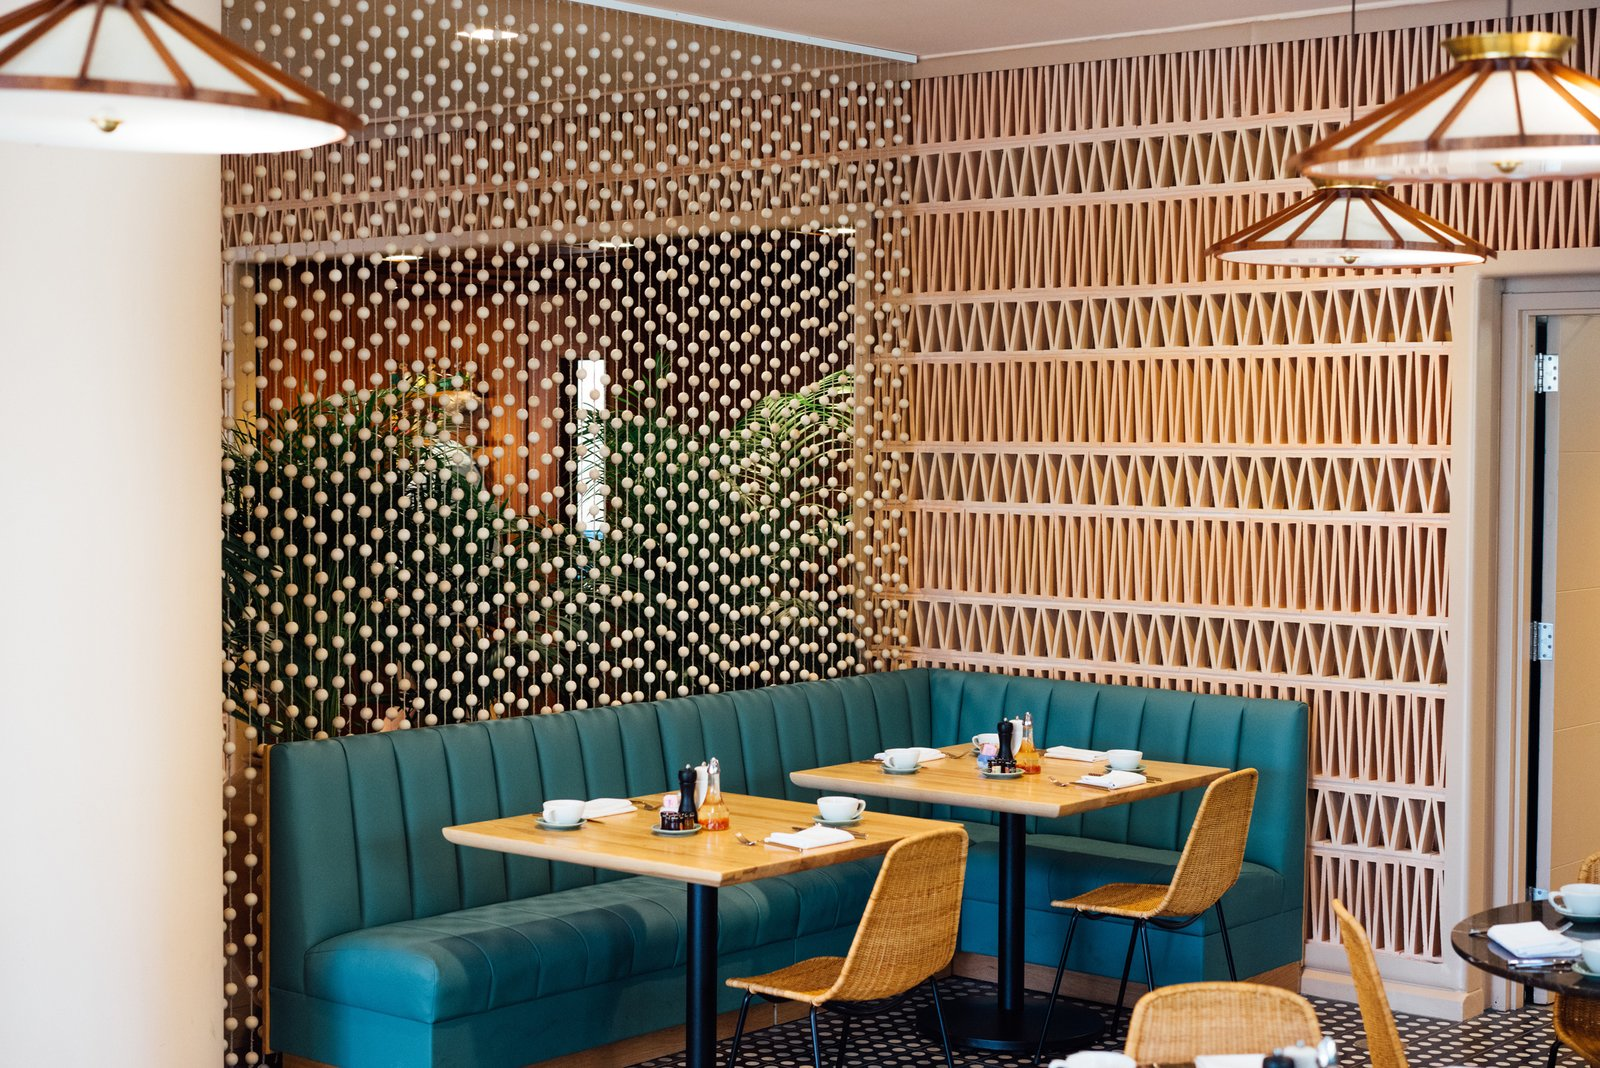 Along with creative craft cocktails coming from the bar, the on-site restaurant serves Pacific Rim and American comfort food. Jewelry designer Anne Korte of AK Studio made the custom curtain for the project.  Photo 14 of 18 in Waikiki's Midcentury Revival Continues to Flourish With a New Jet Set-Inspired Hotel